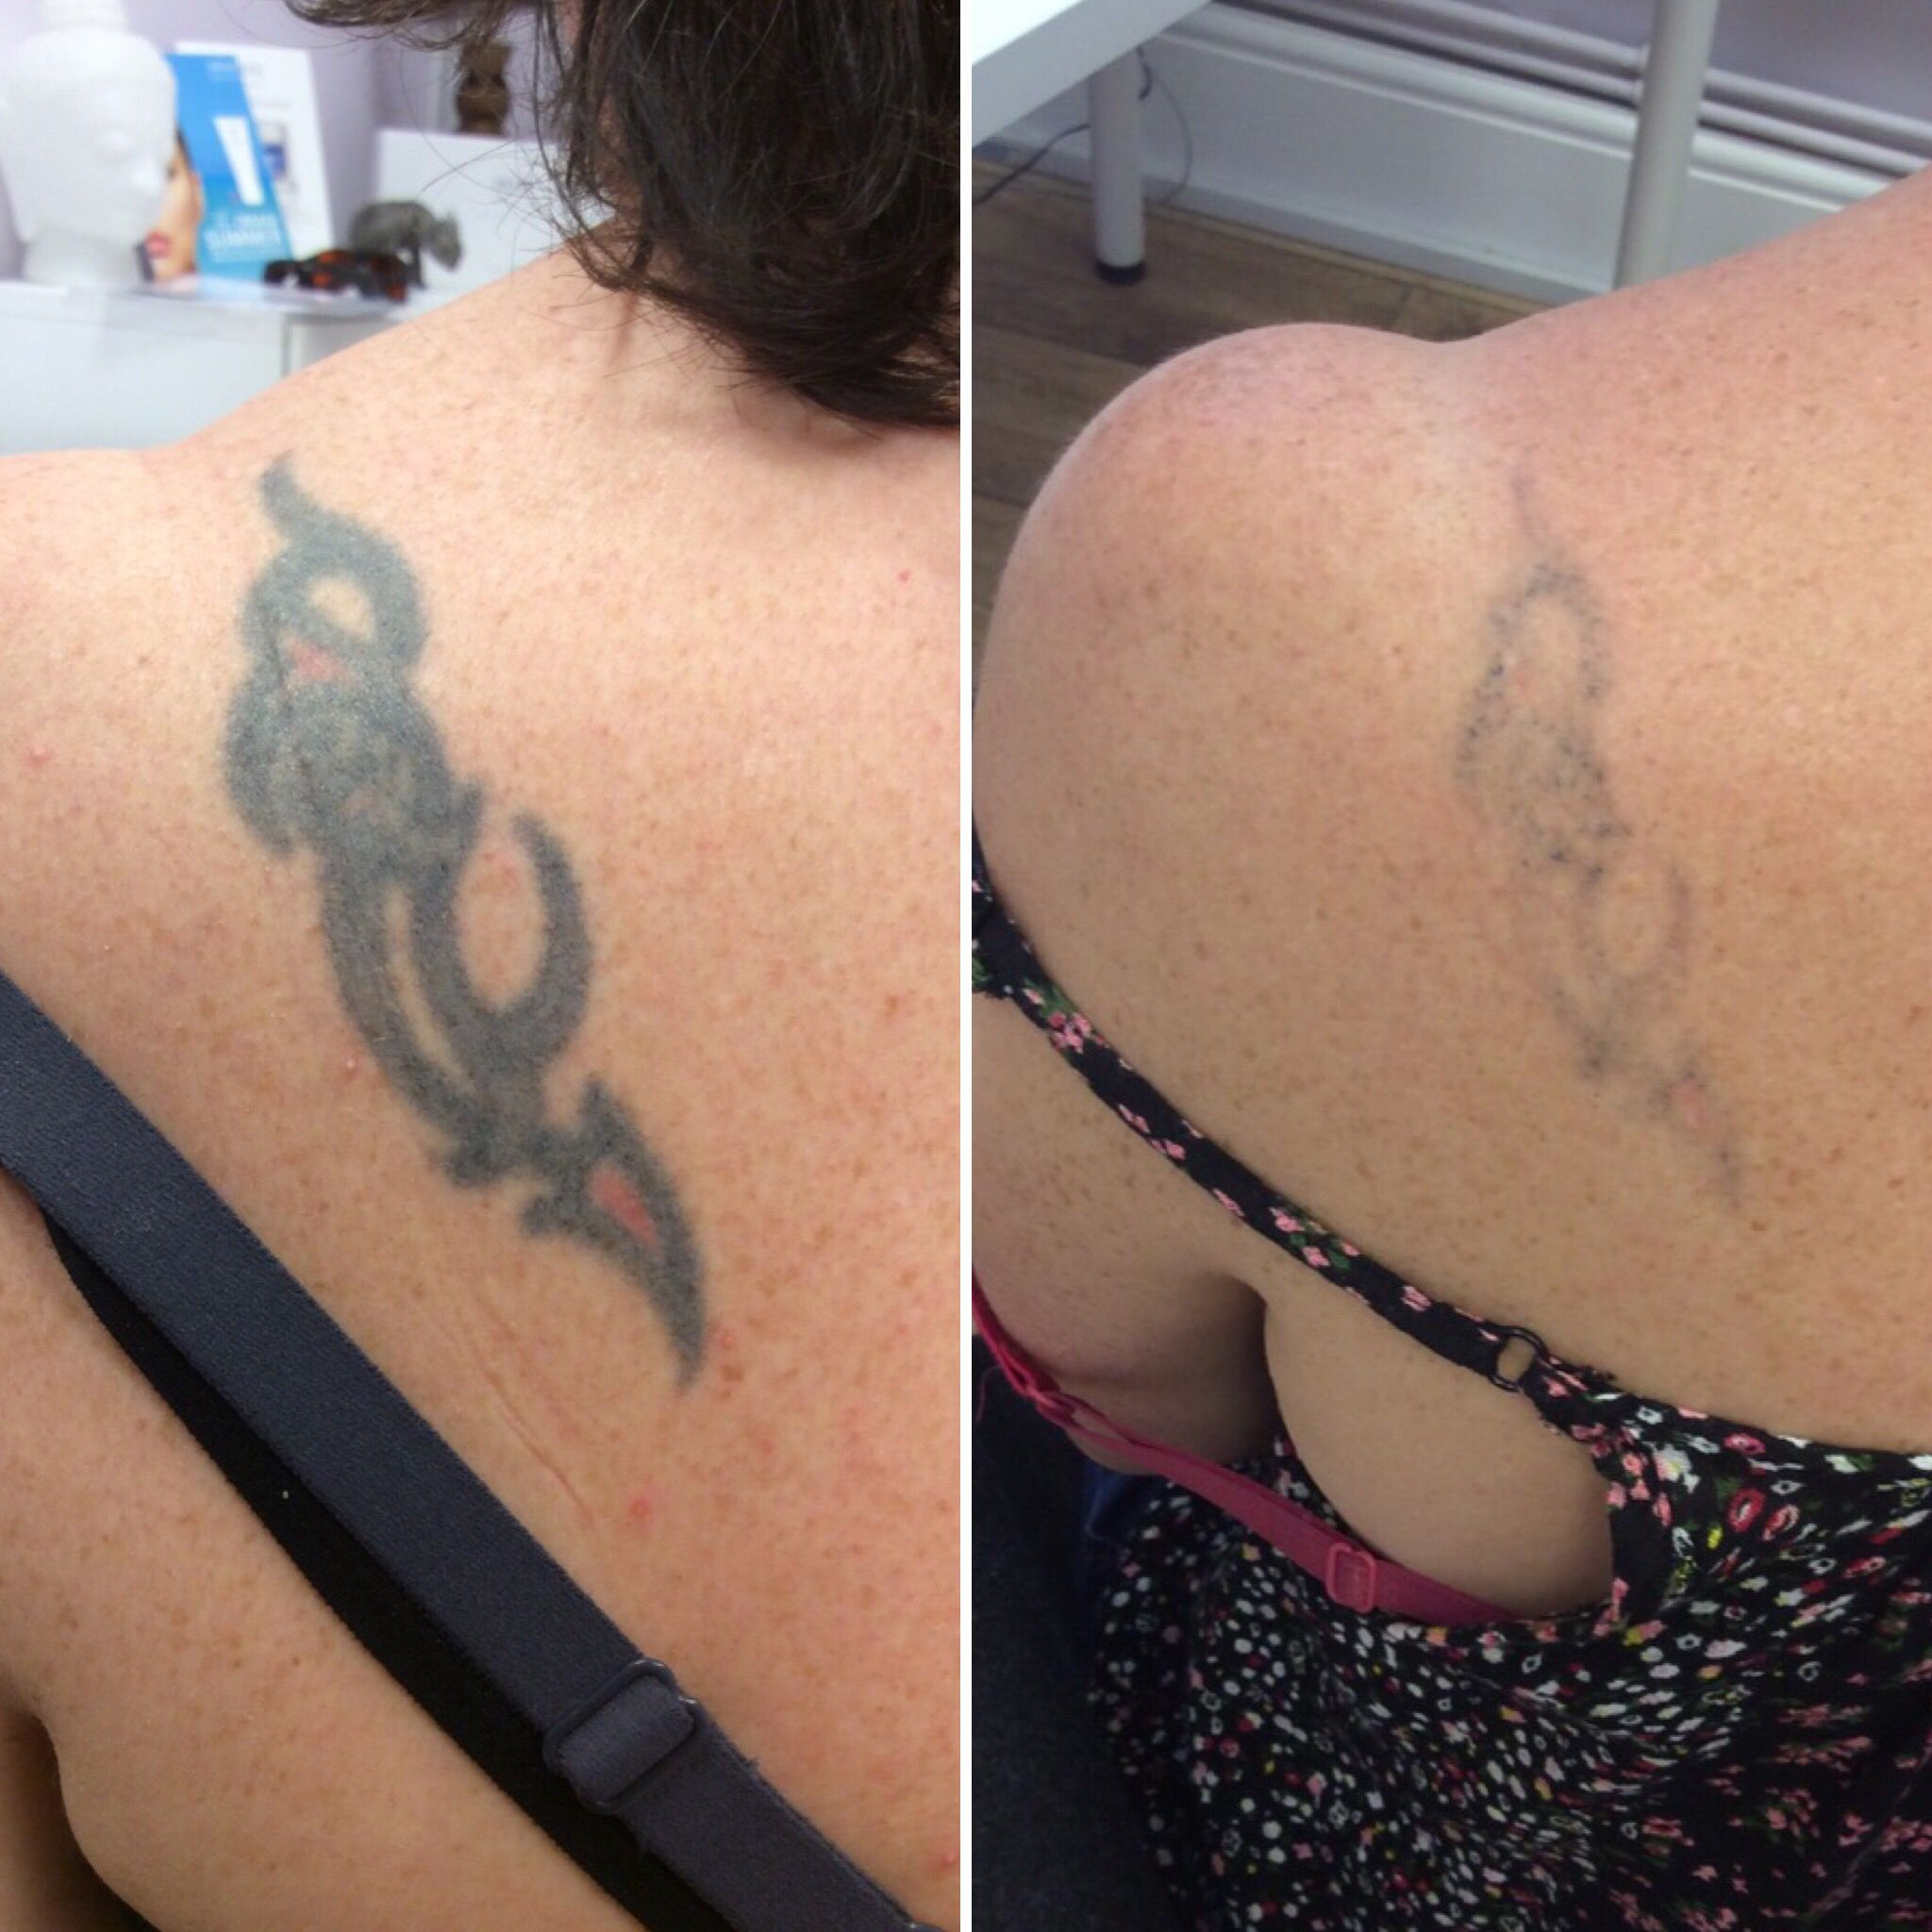 3 Treatments With The Picosure Laser Tattoos Tattoo Removal Laser Tattoo Removal